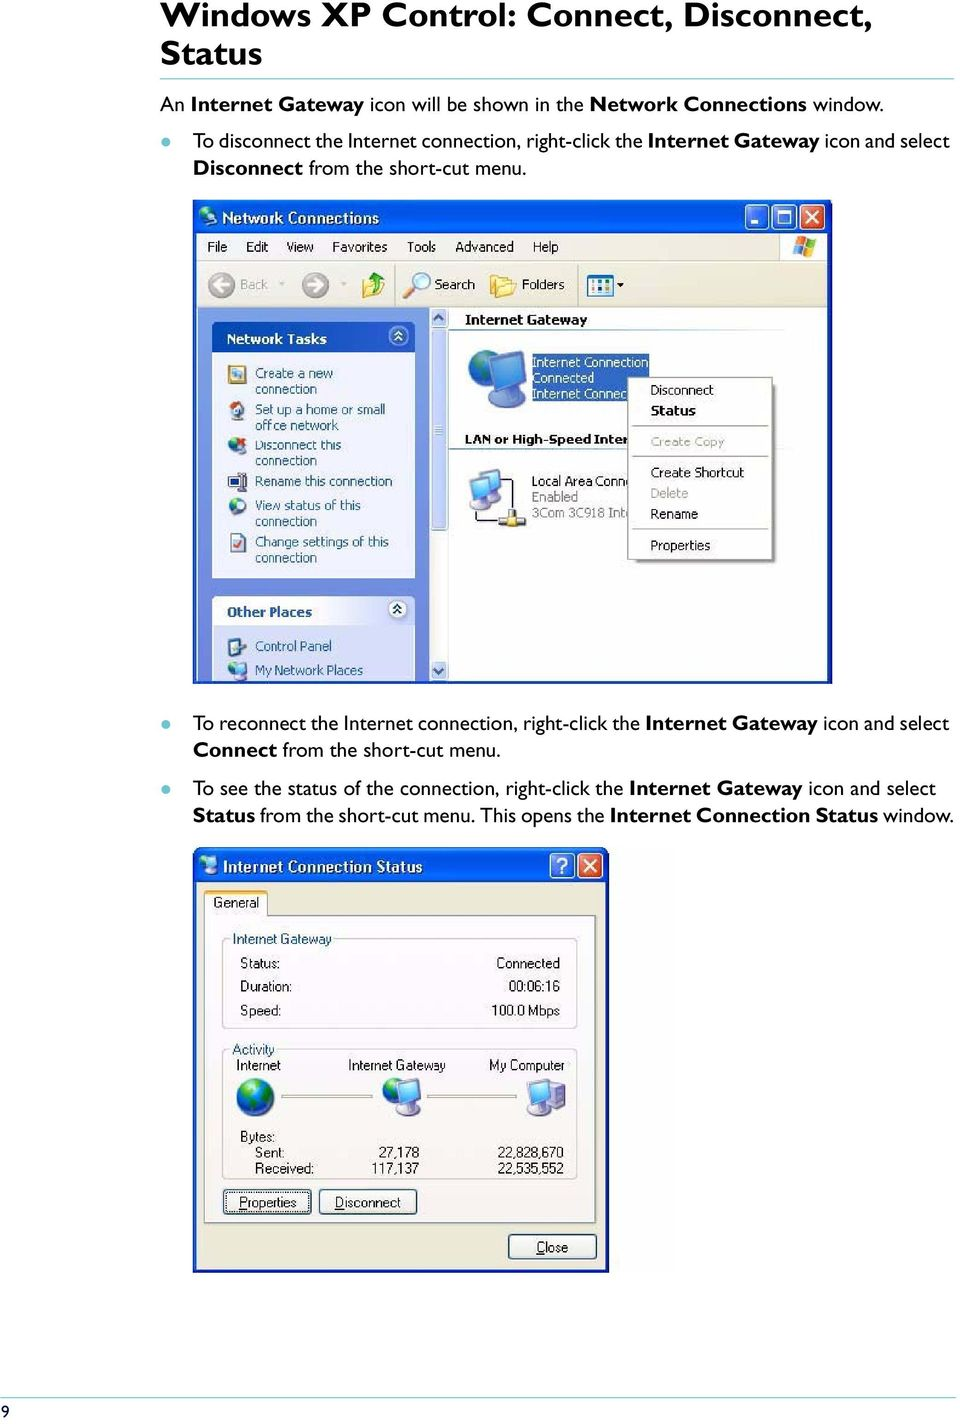 To reconnect the Internet connection, right-click the Internet Gateway icon and select Connect from the short-cut menu.